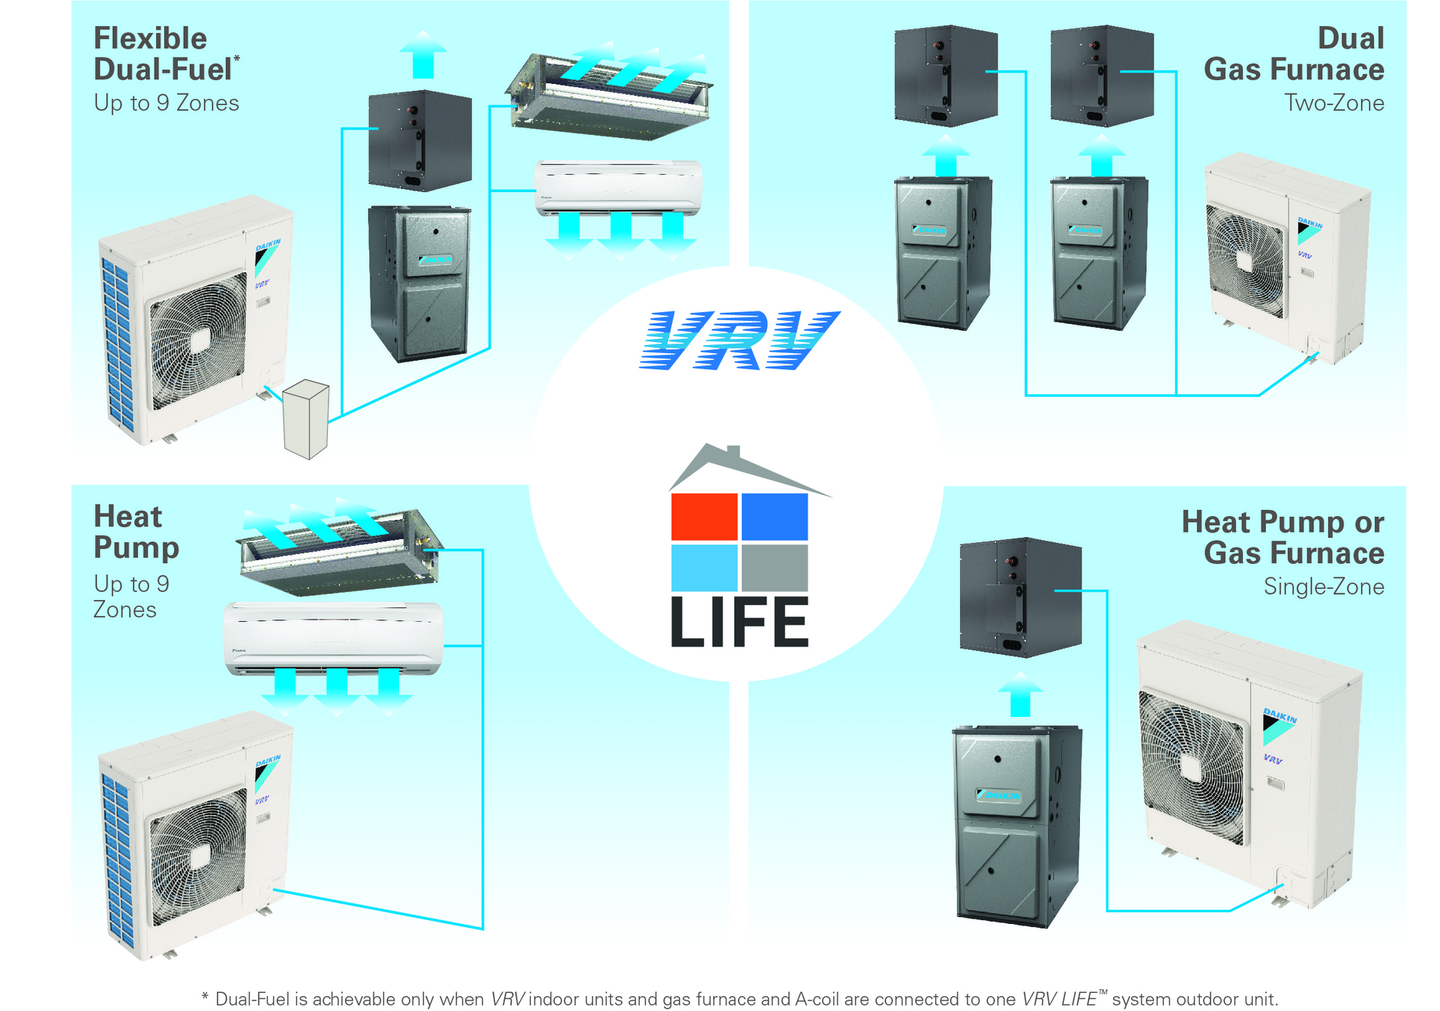 Daikin Launches New Vrv Life Systems For Residential Applications Contracting Business